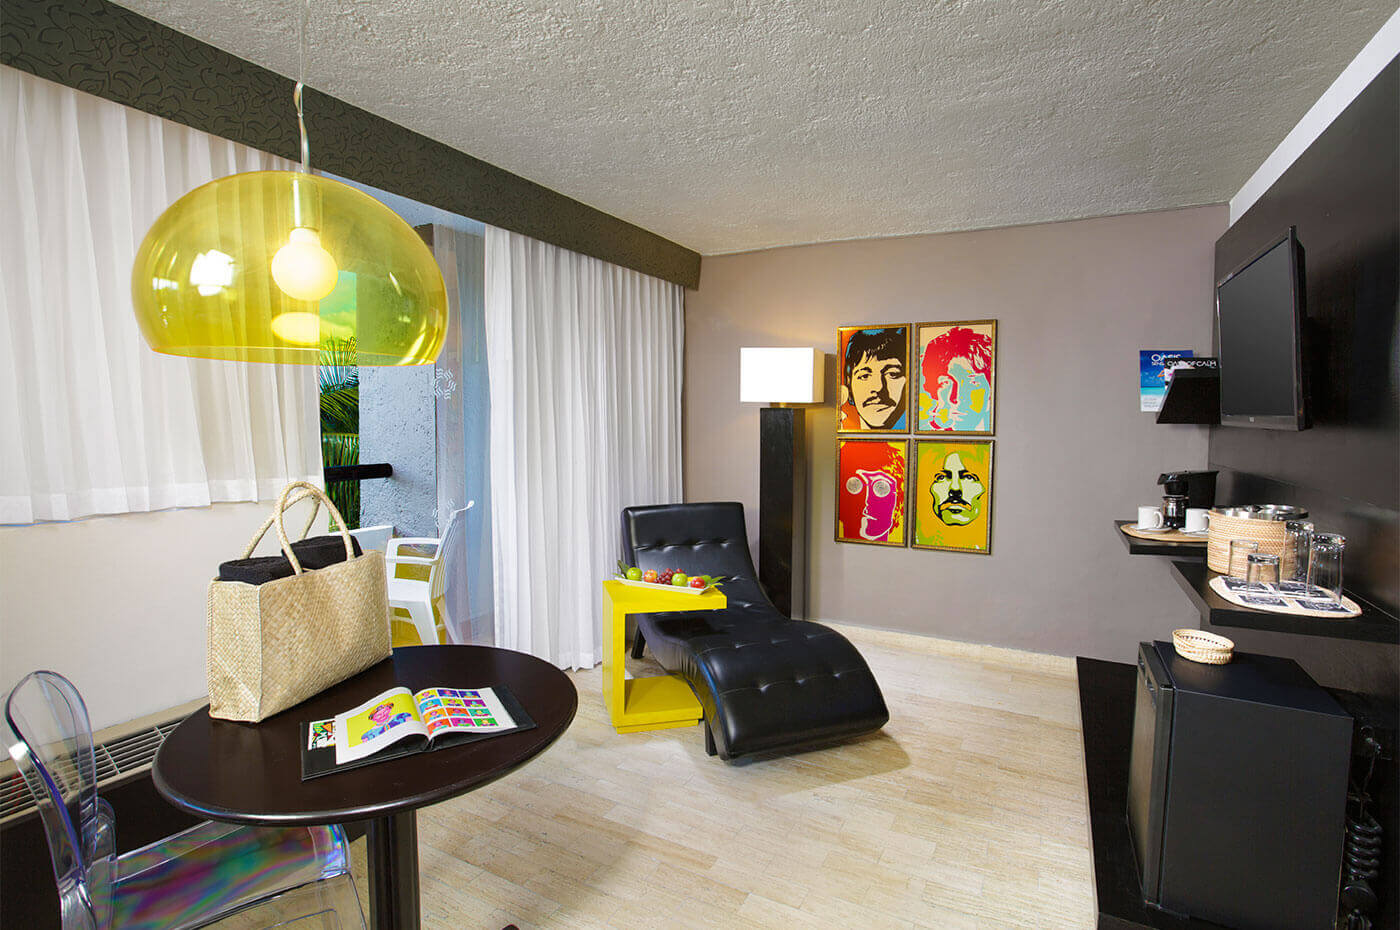 Lounge room in Junior room decorated with pop pictures and balcony hotel Oh! The Urban Oasis